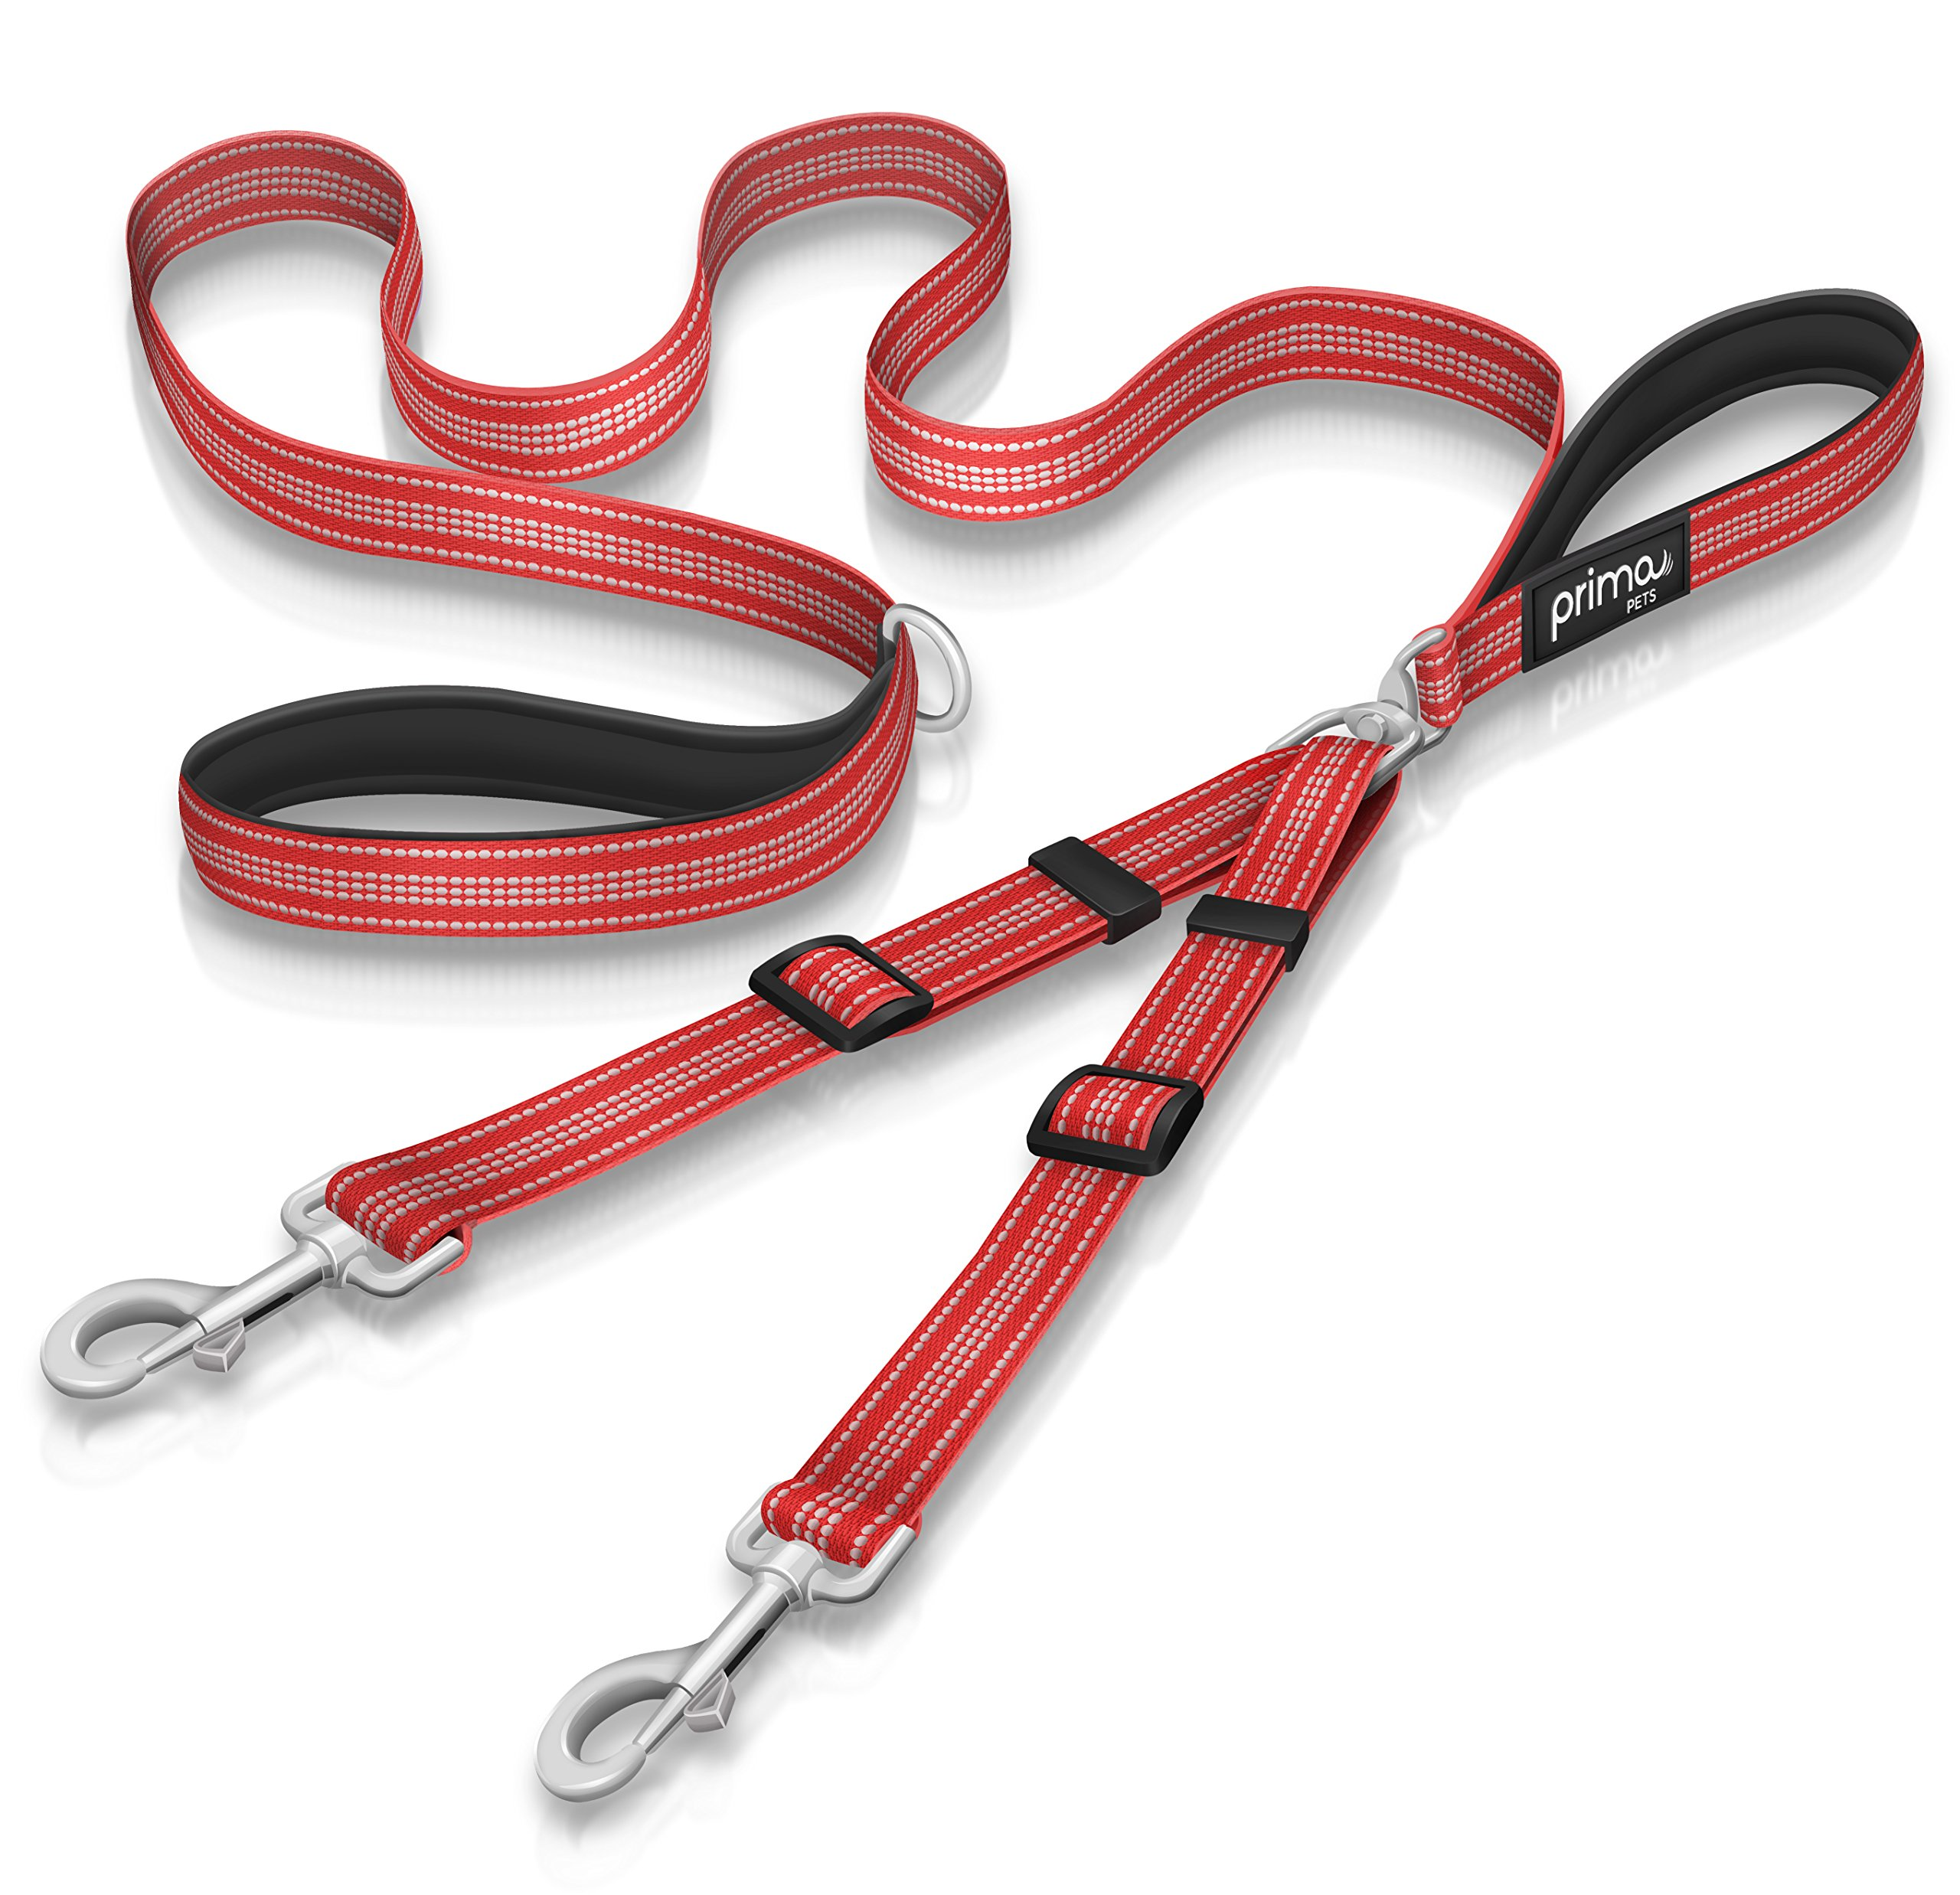 Prima Pet Premium Reflective Double Dog Leash - Adjustable Coupler - 2 Padded Handles- Great for Walking 2 Dogs / Dual Dogs - Tangle Free (LARGE - 1'' Width, 6 Feet RED) by Prima Pets